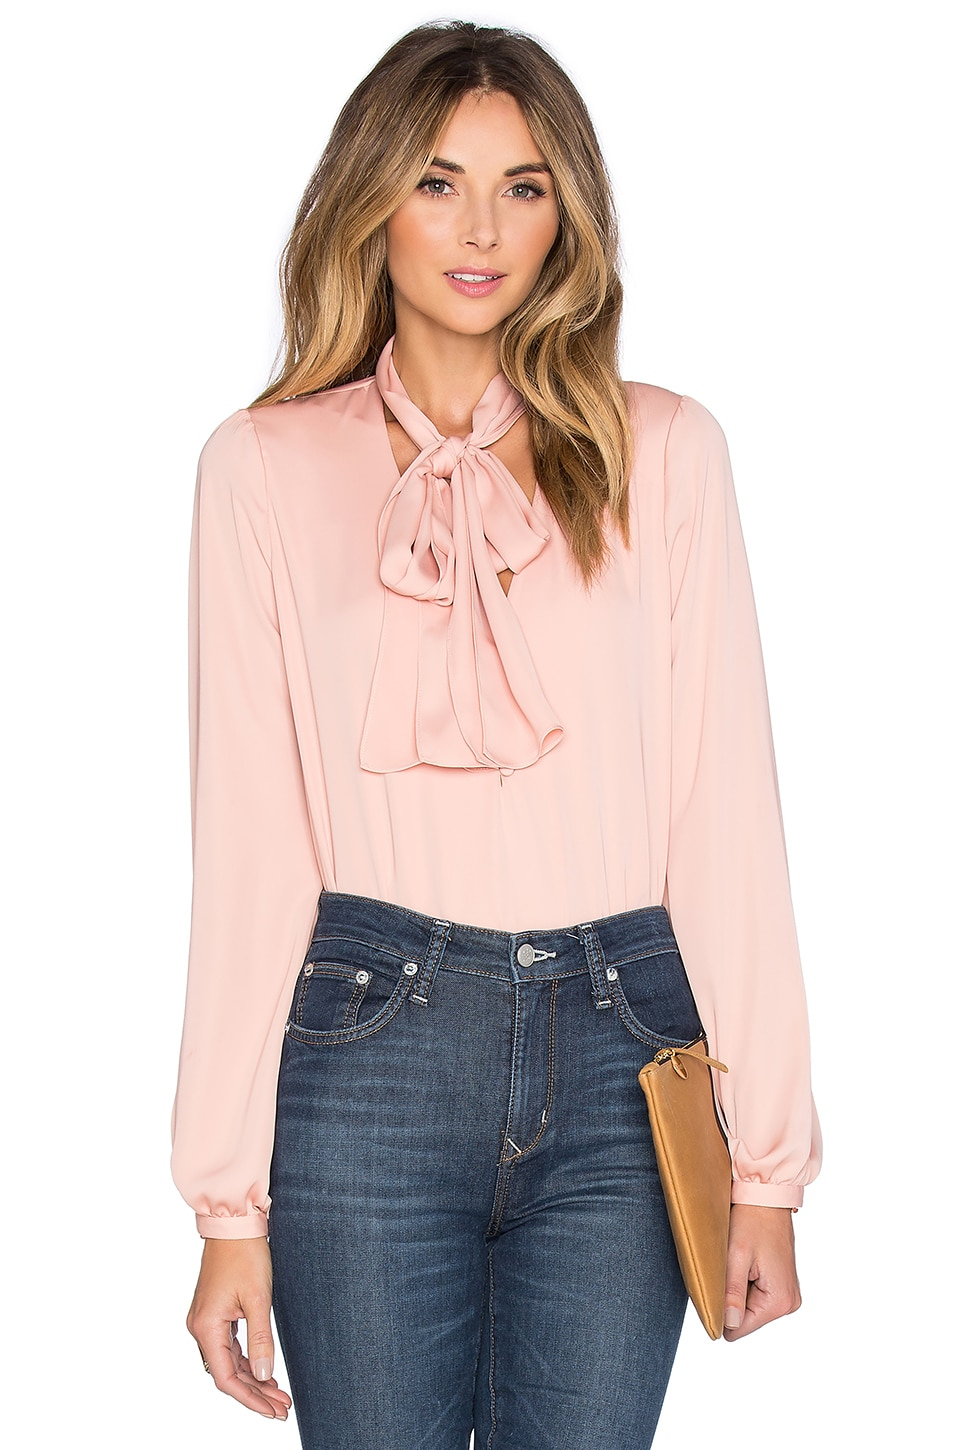 L'Academie The 70's Blouse in Blush